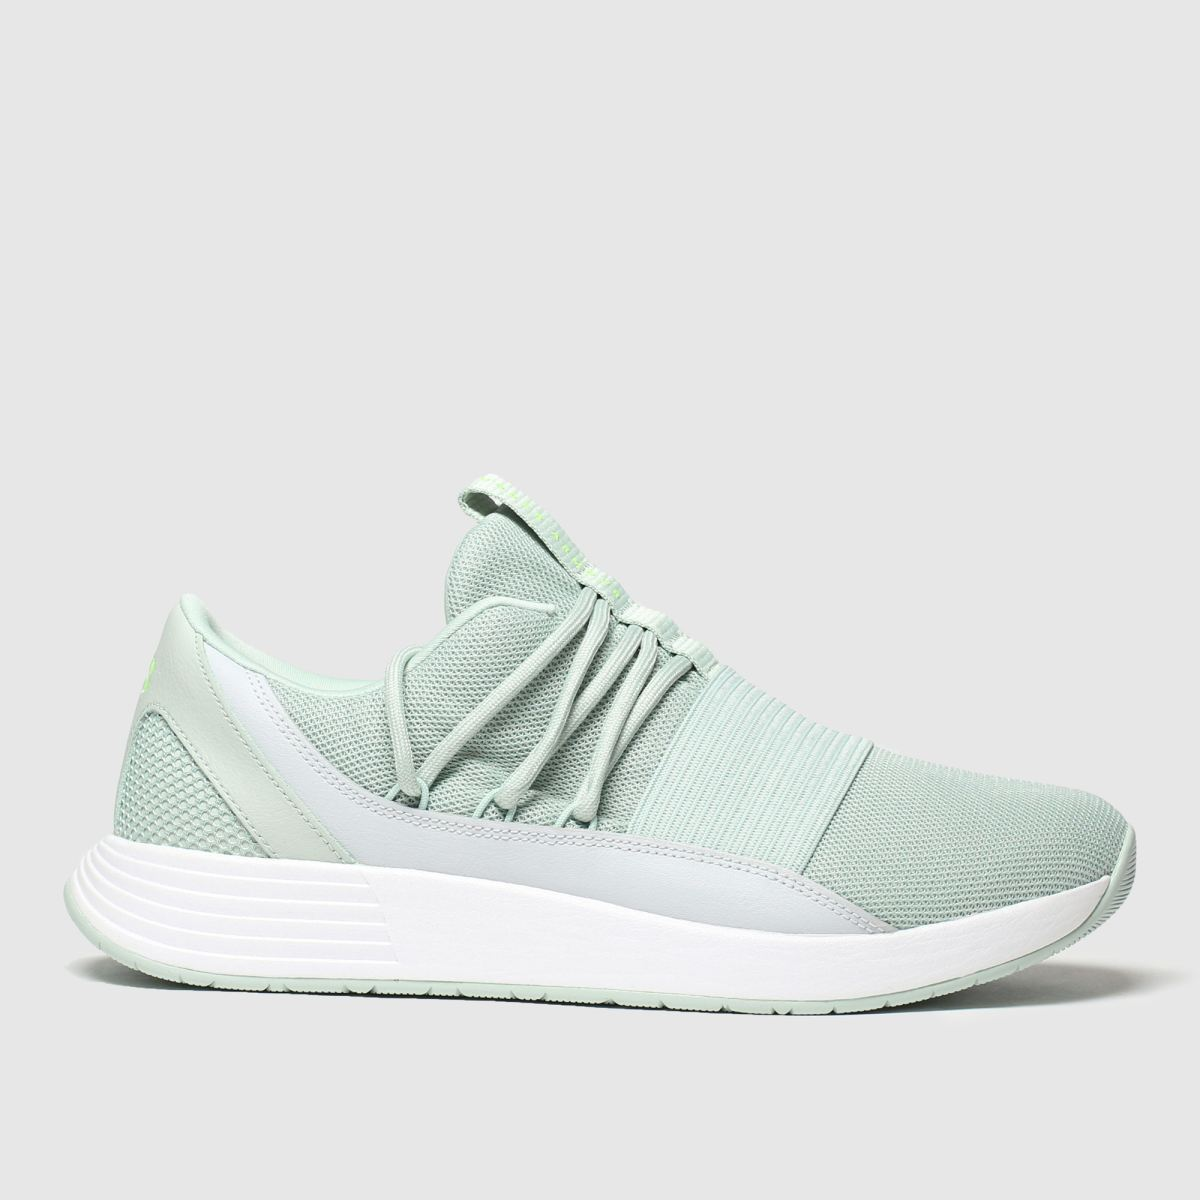 Under Armour Light Green Breathe Lace Glit Trainers